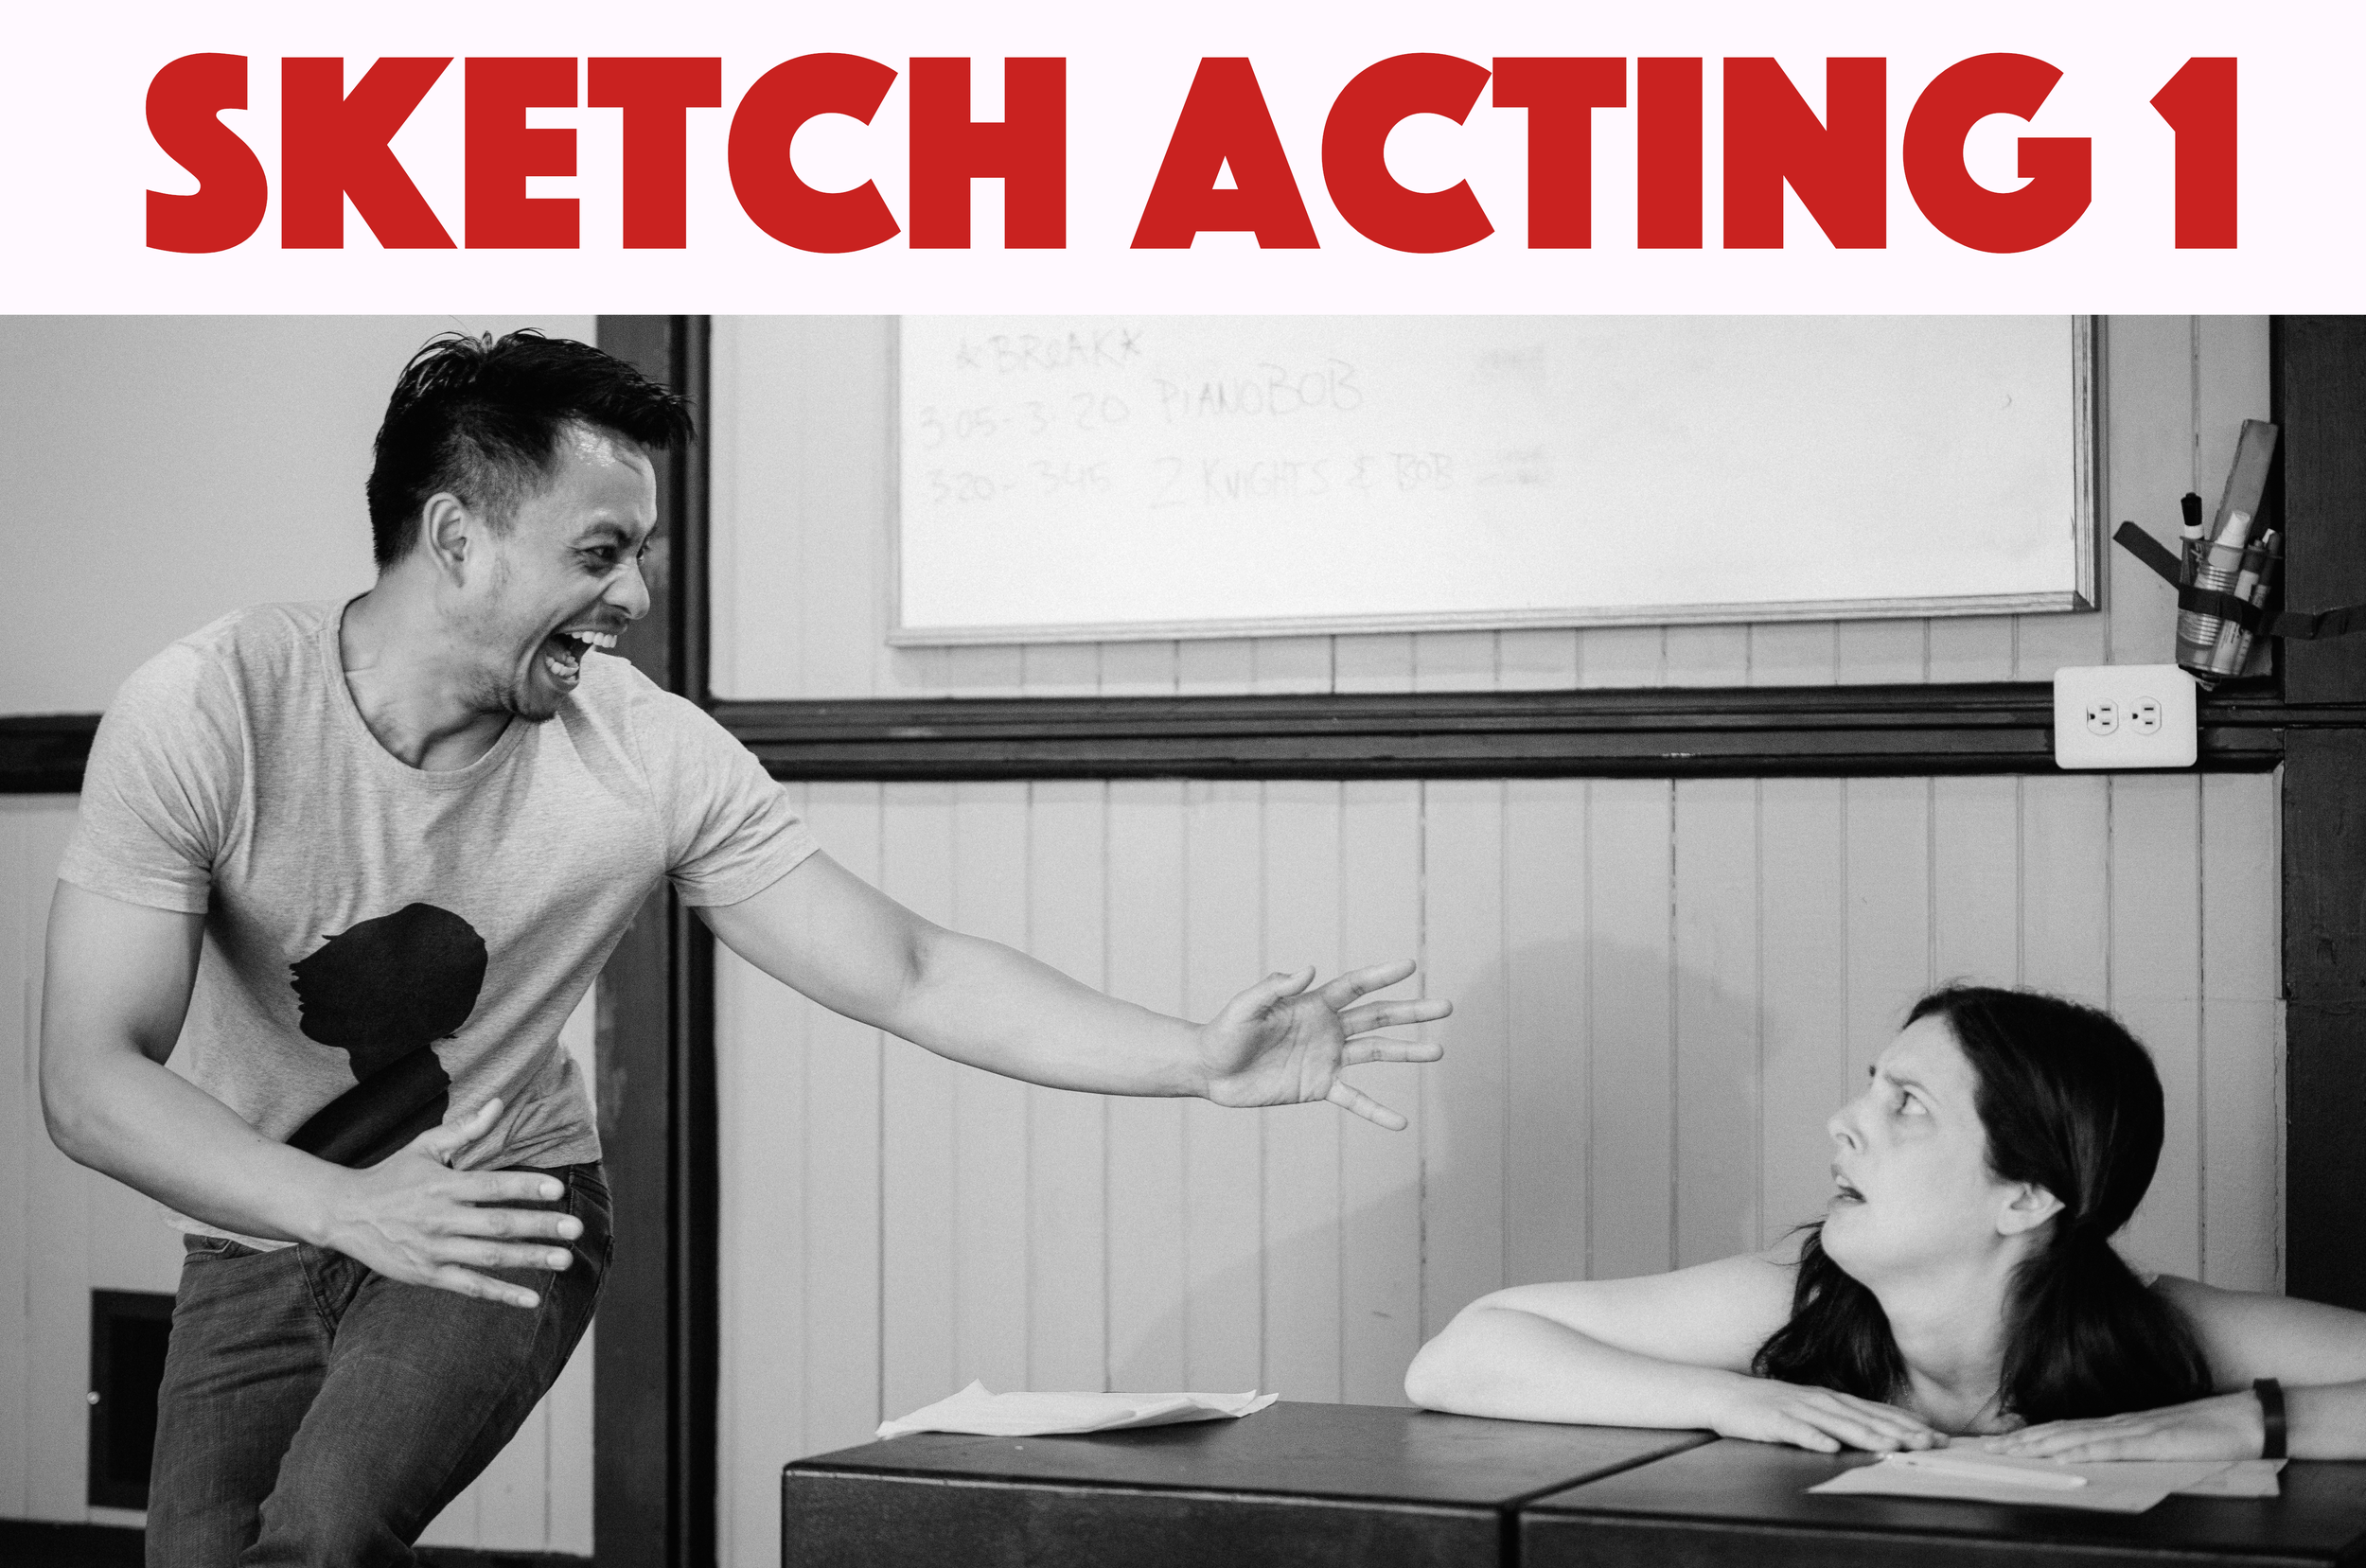 """Learn to perform sketch comedy The KML Way: through intuition, dedication, and collaboration. Learn to take risks, trust your instincts, and """"find the game."""" Sketch Acting 1 is open to all experience levels."""